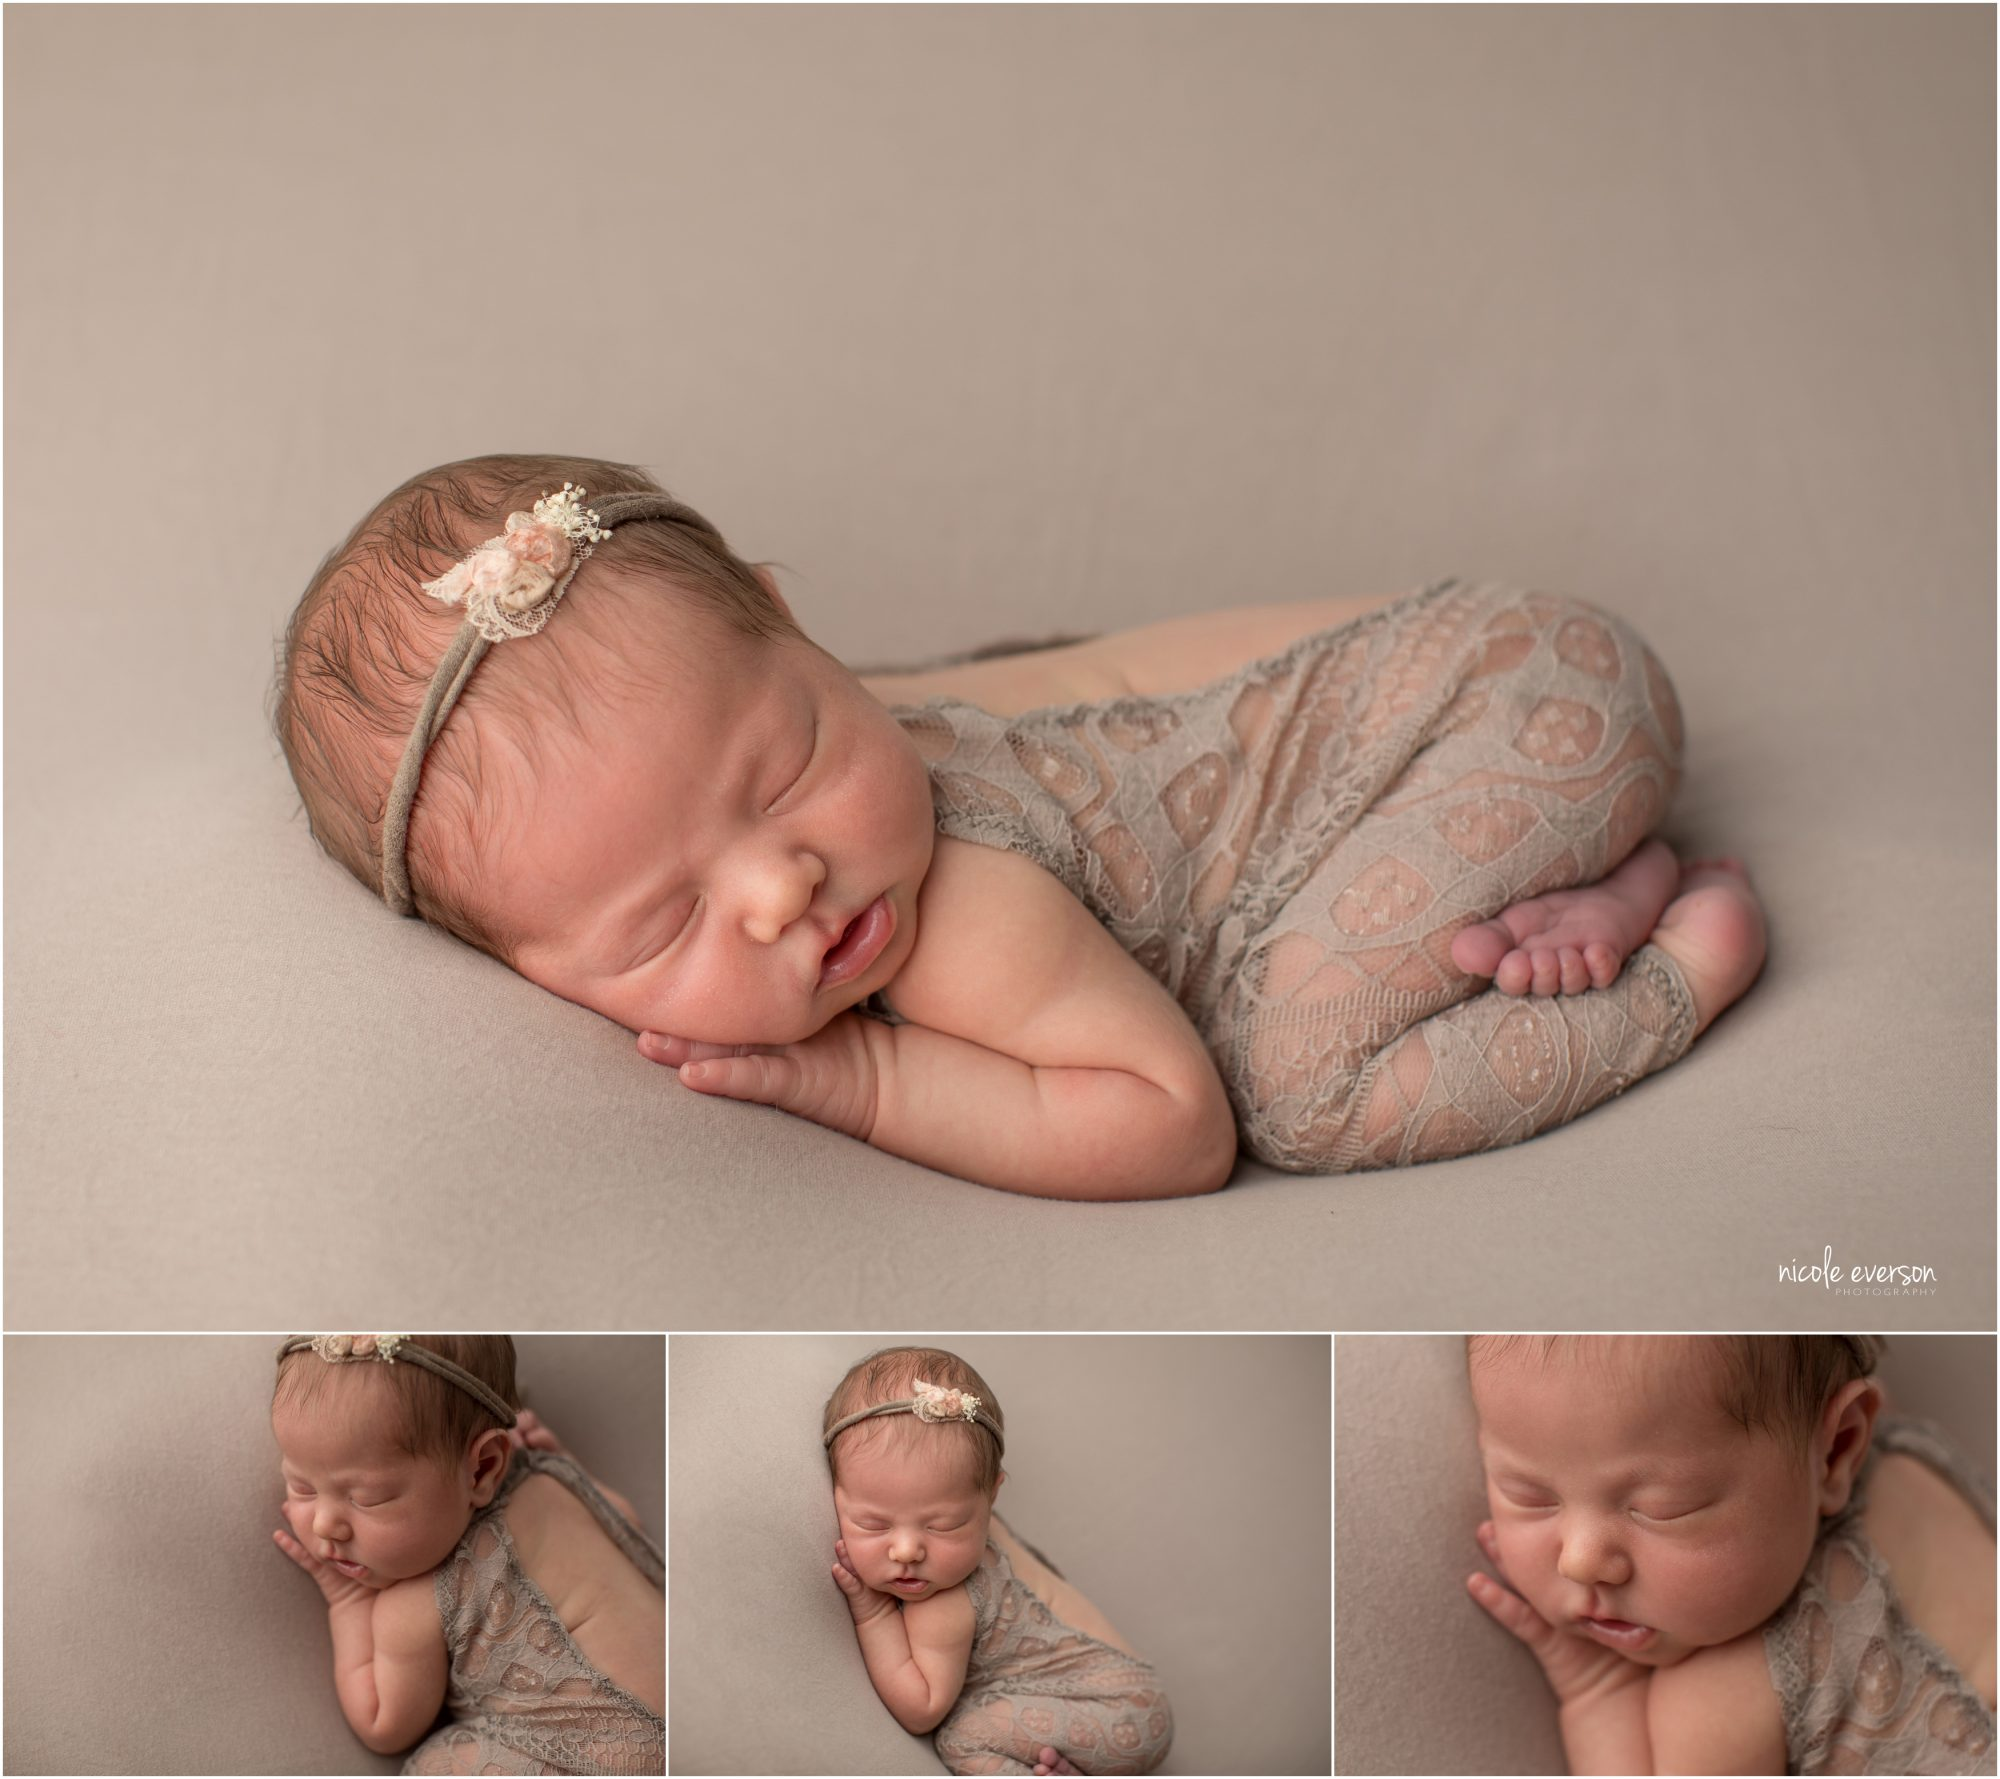 newborn picture of a baby girl smiling on a tan backdrop wearing a tan newborn outfit